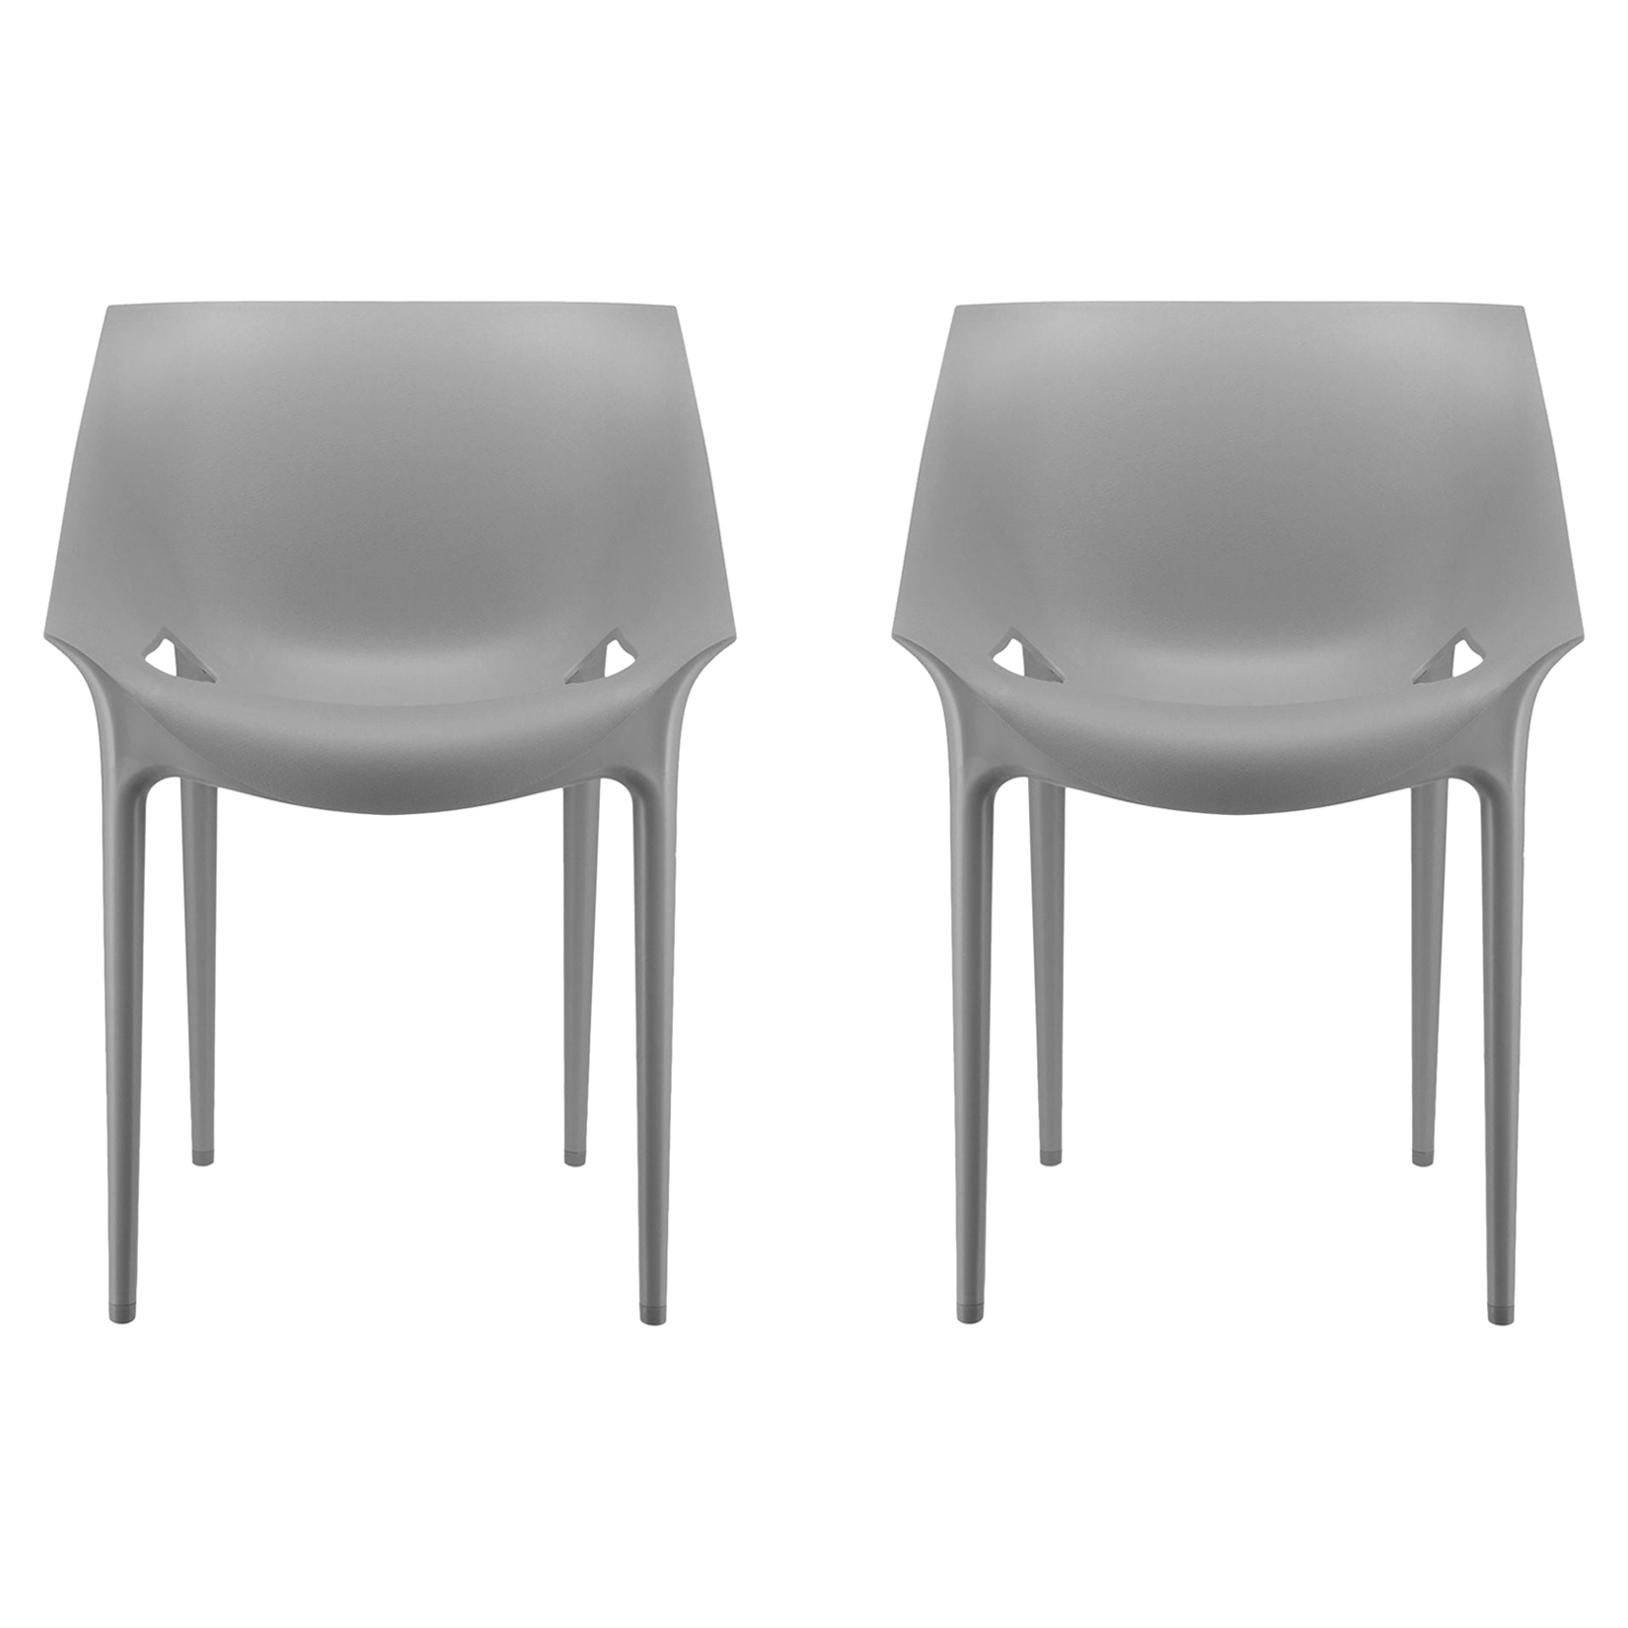 Set of 2 Kartell Dr. Yes Chairs in Grey by Philippe Starck & Eugeni Quitllet